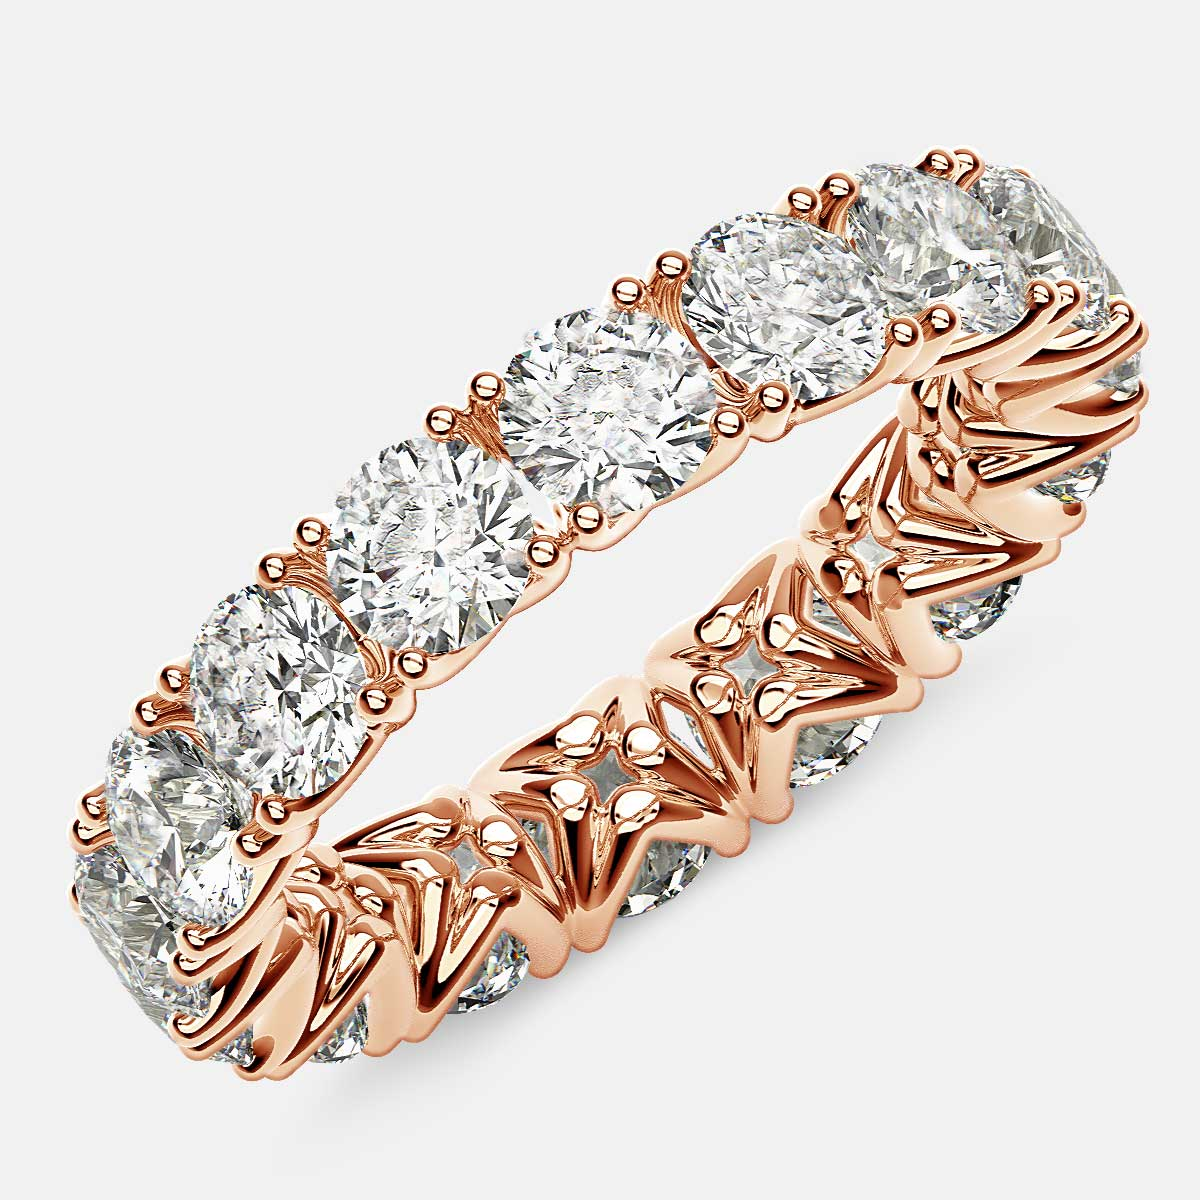 Curved V-Prong Eternity Ring with Round Diamonds in 18k Rose Gold